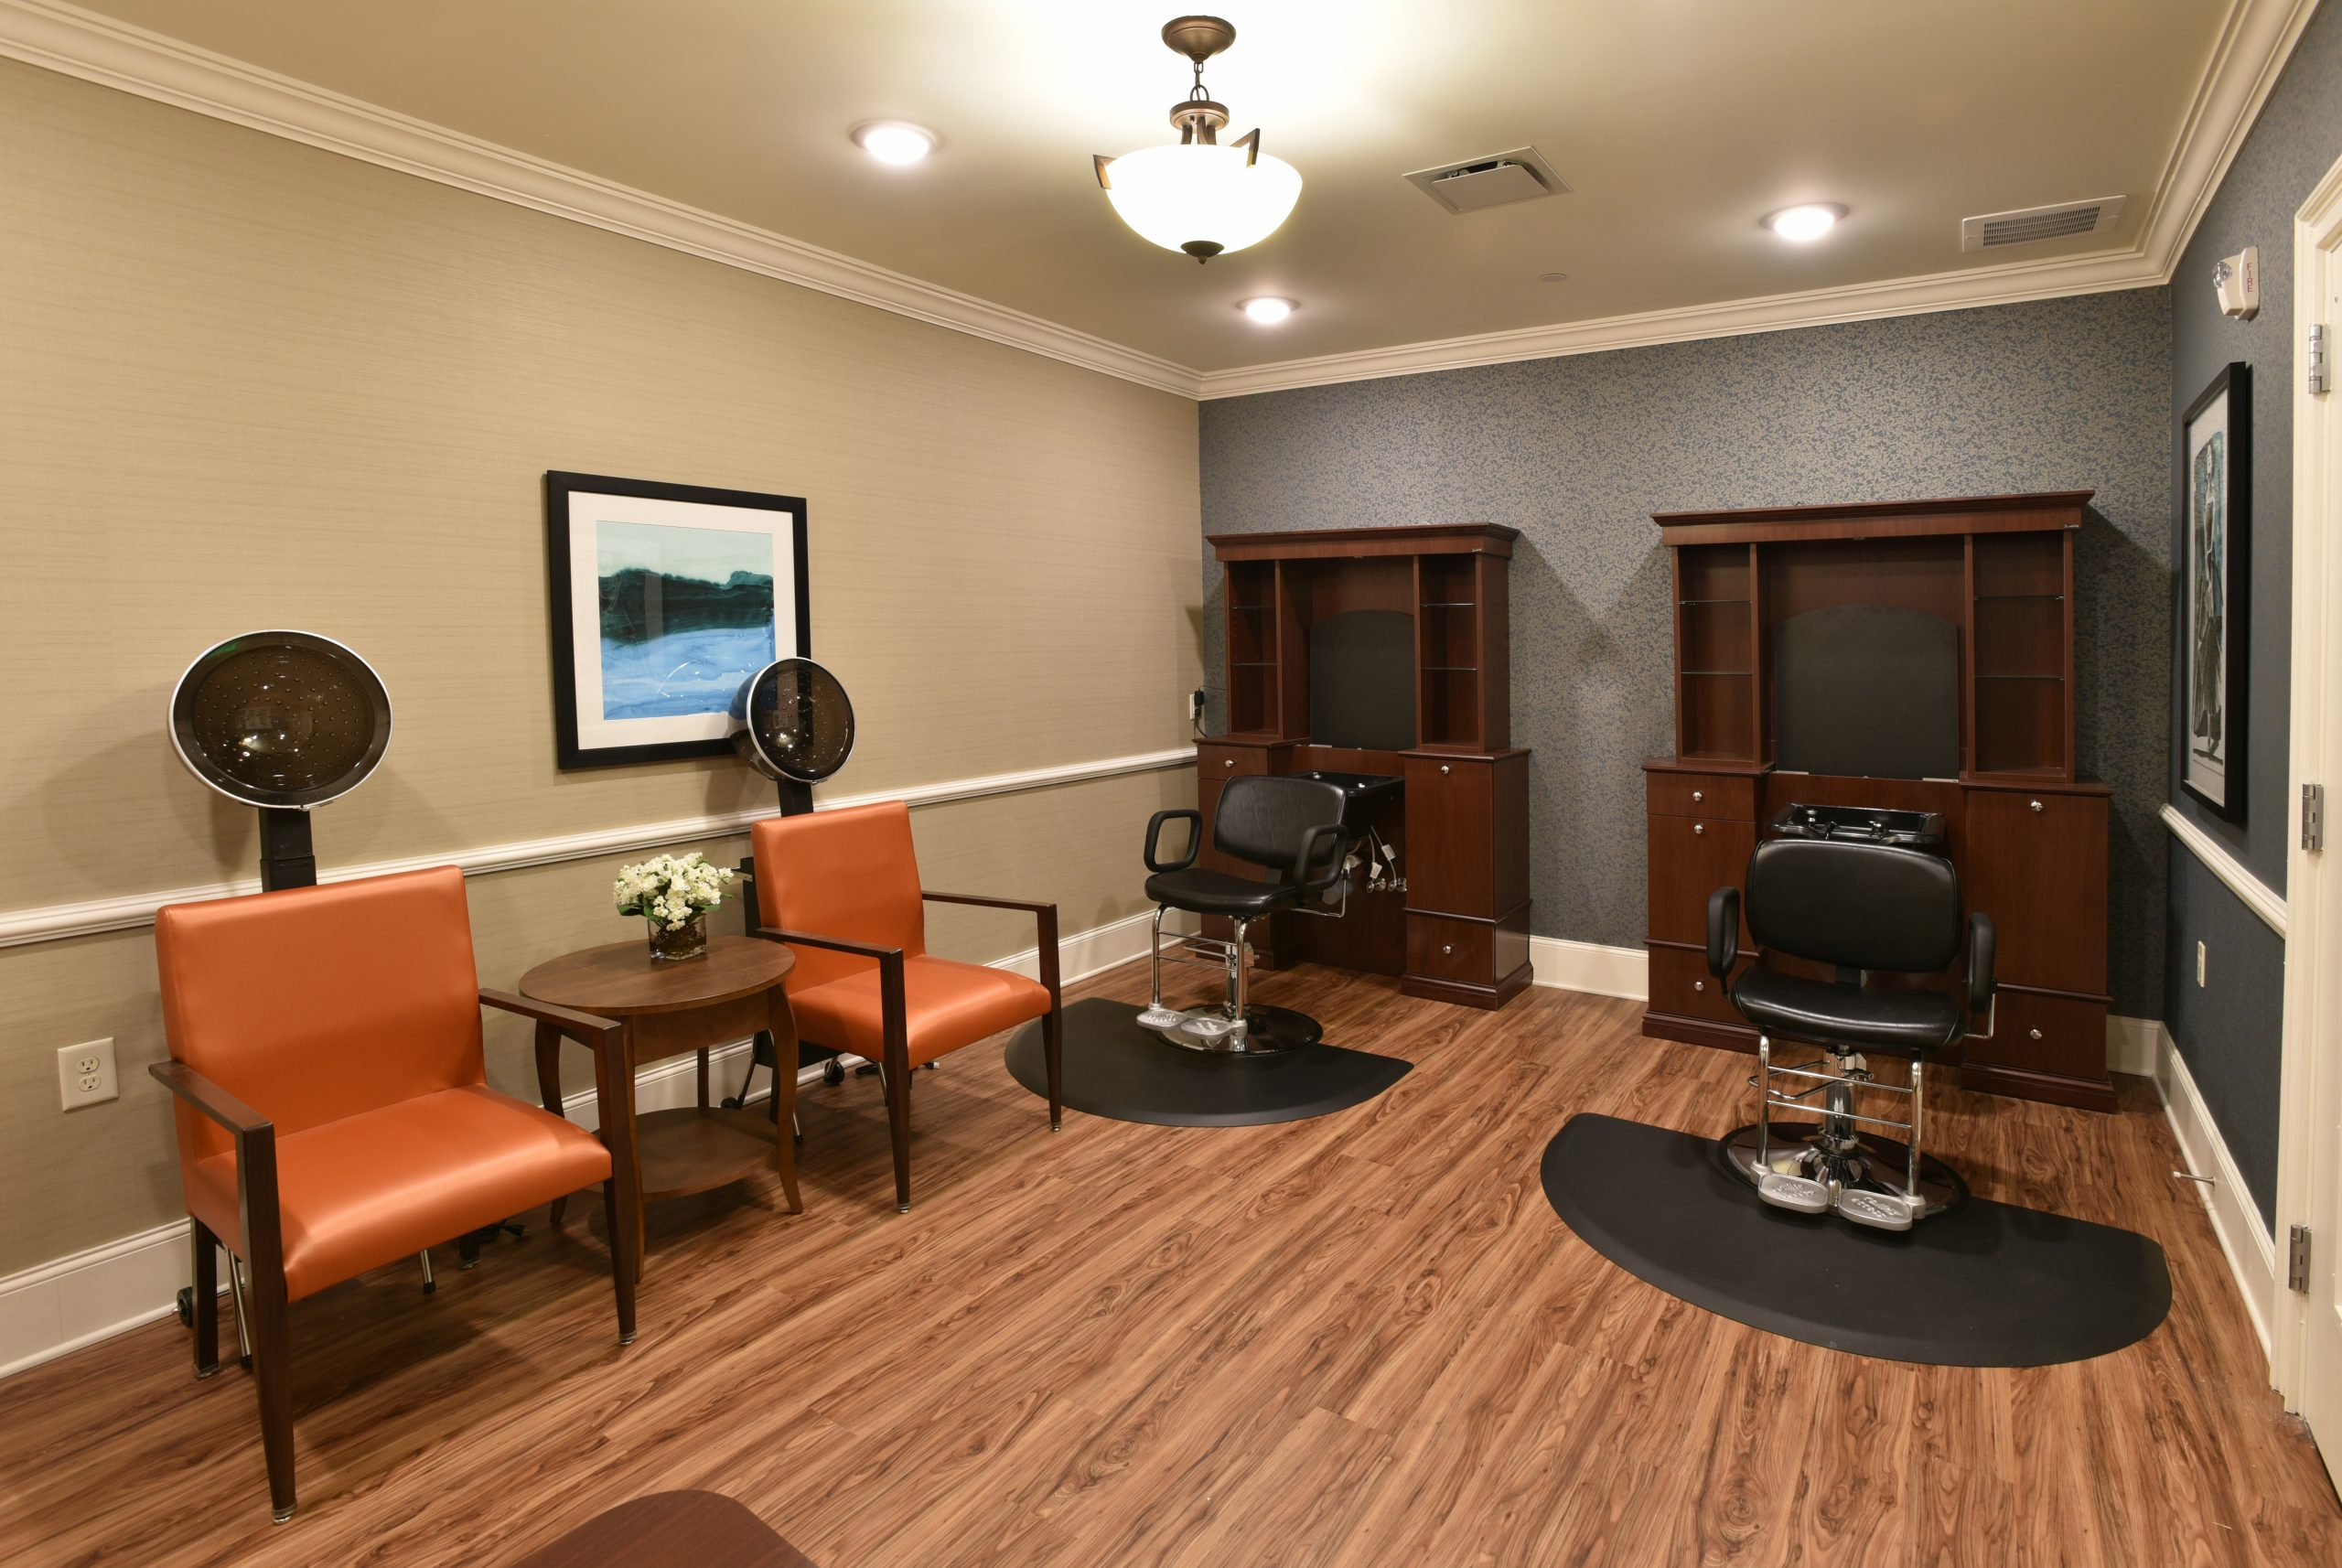 Villas at Canterfield of Kennesaw salon